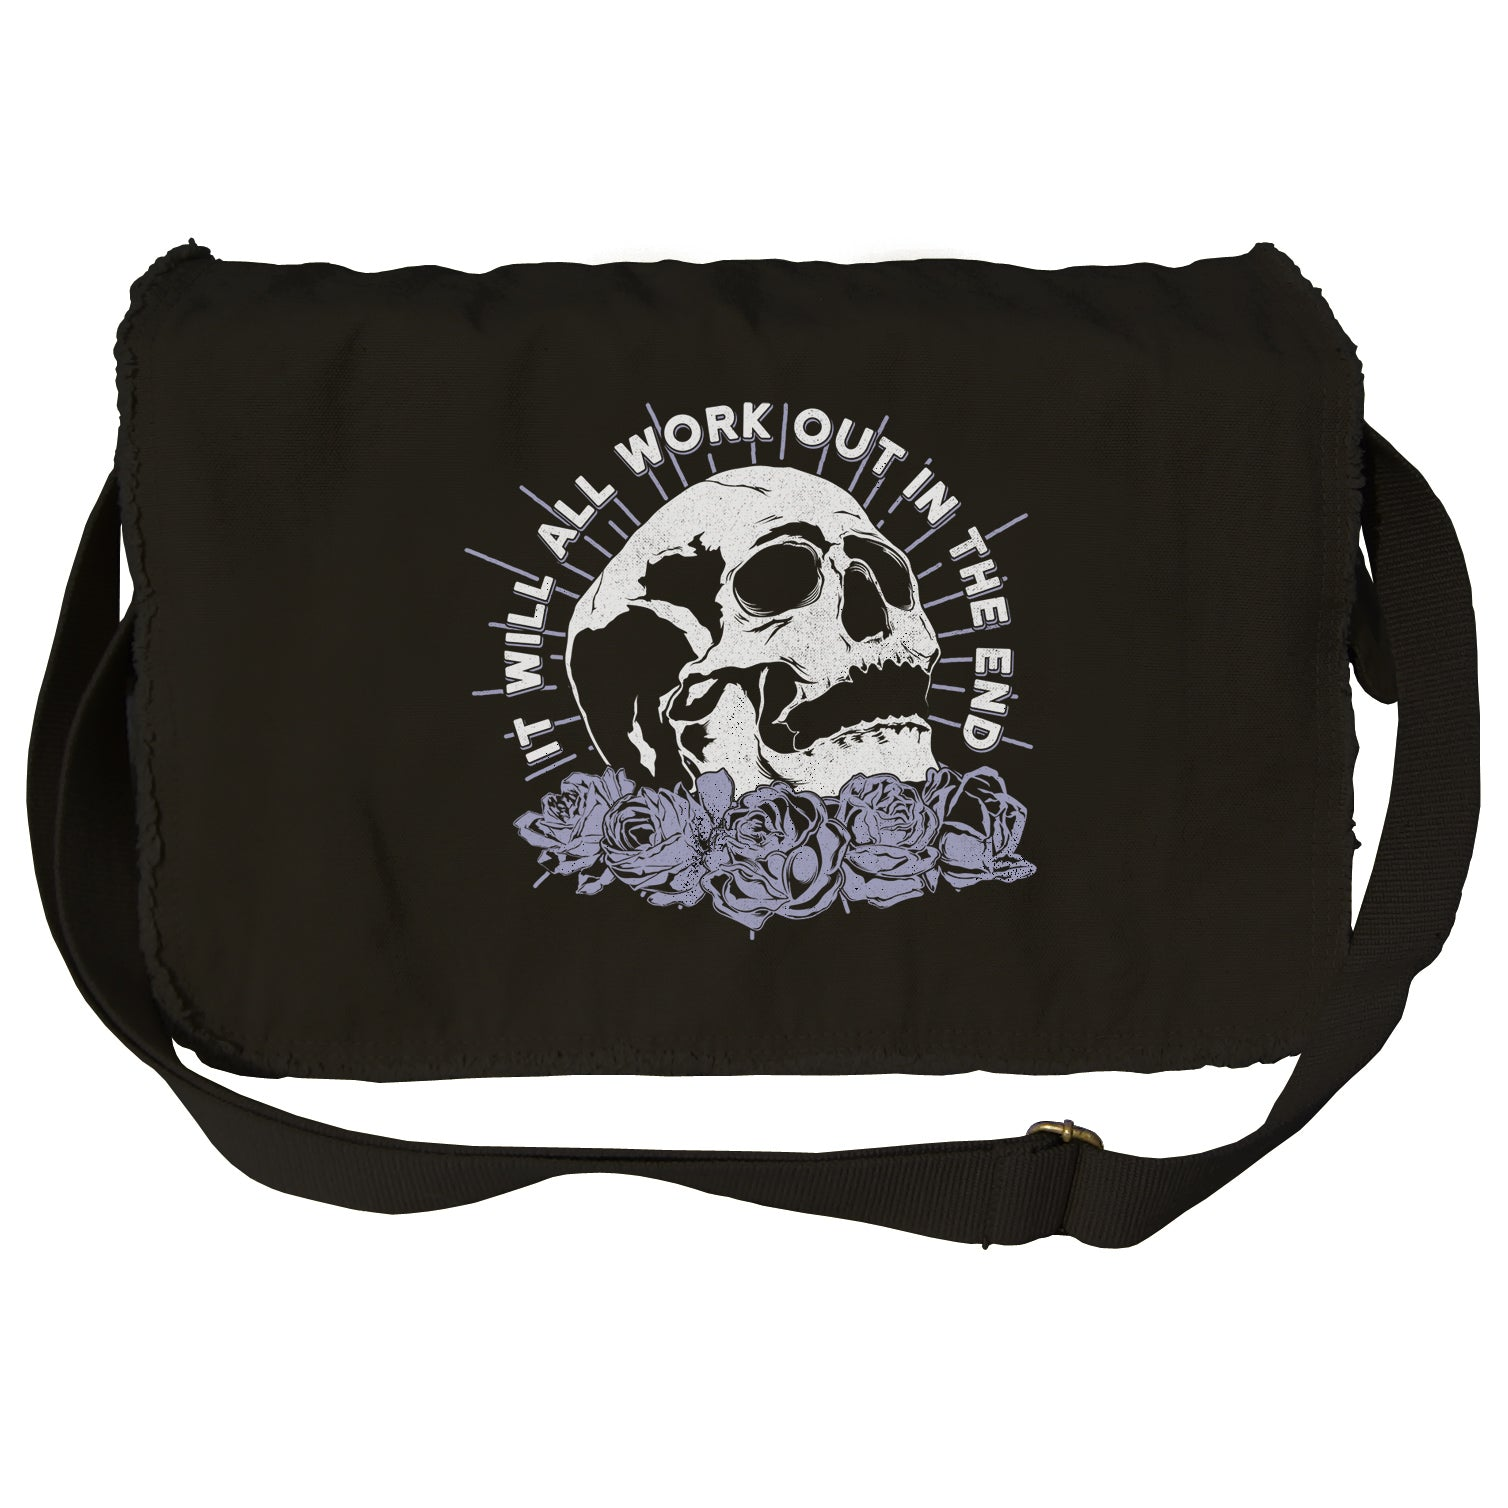 It Will All Work Out In The End Messenger Bag